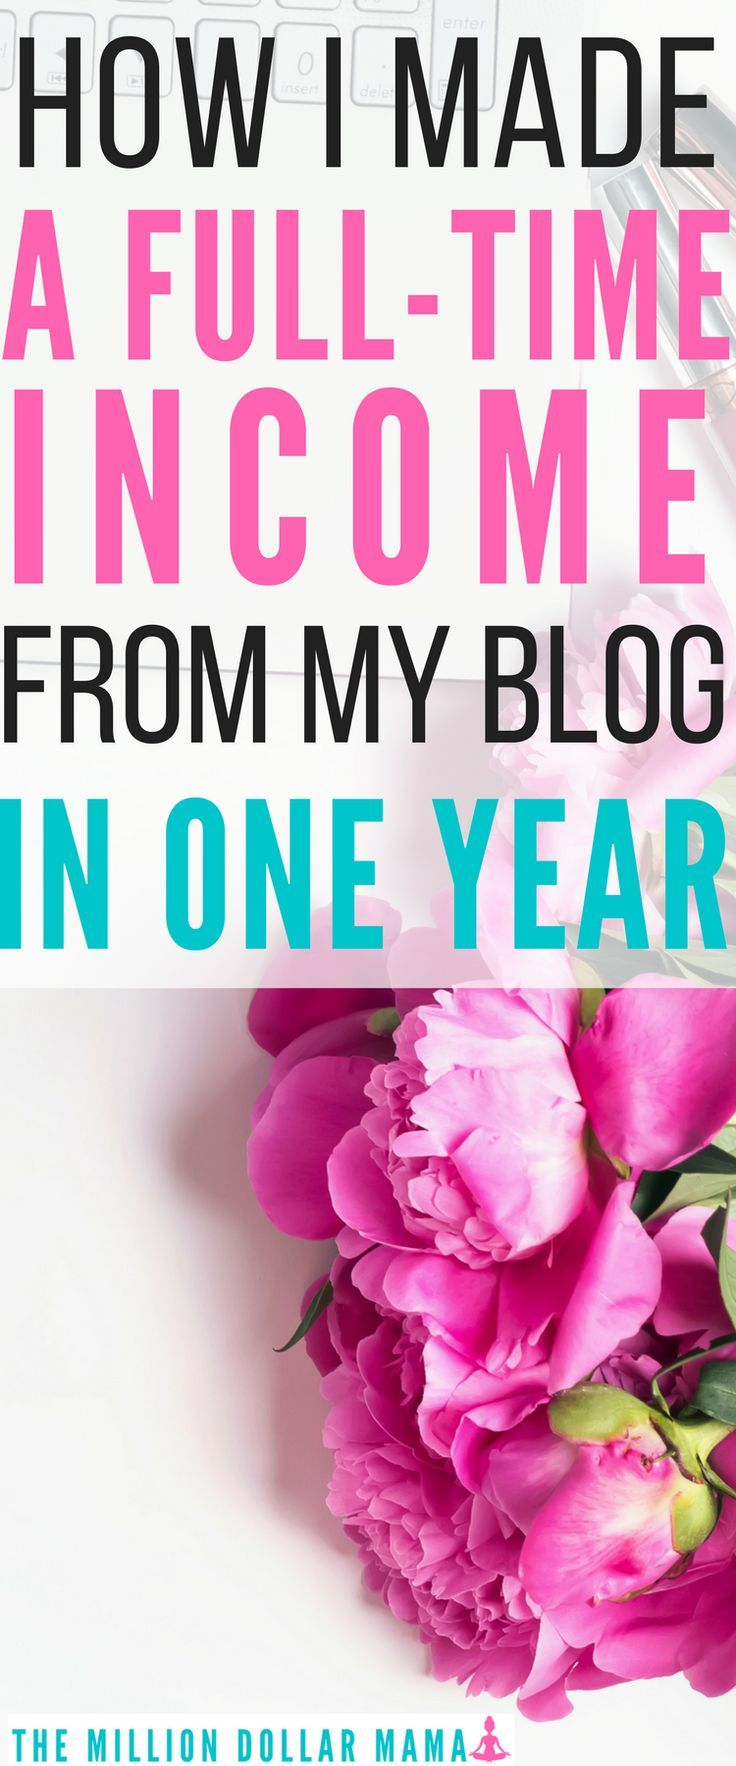 Want to know how to make money blogging? In one year, I've gone from being a SAHM making almost nothing to making a full time income from home, simply by blogging. Click through to my best tips and advice on how you can start a profitable blog, too.